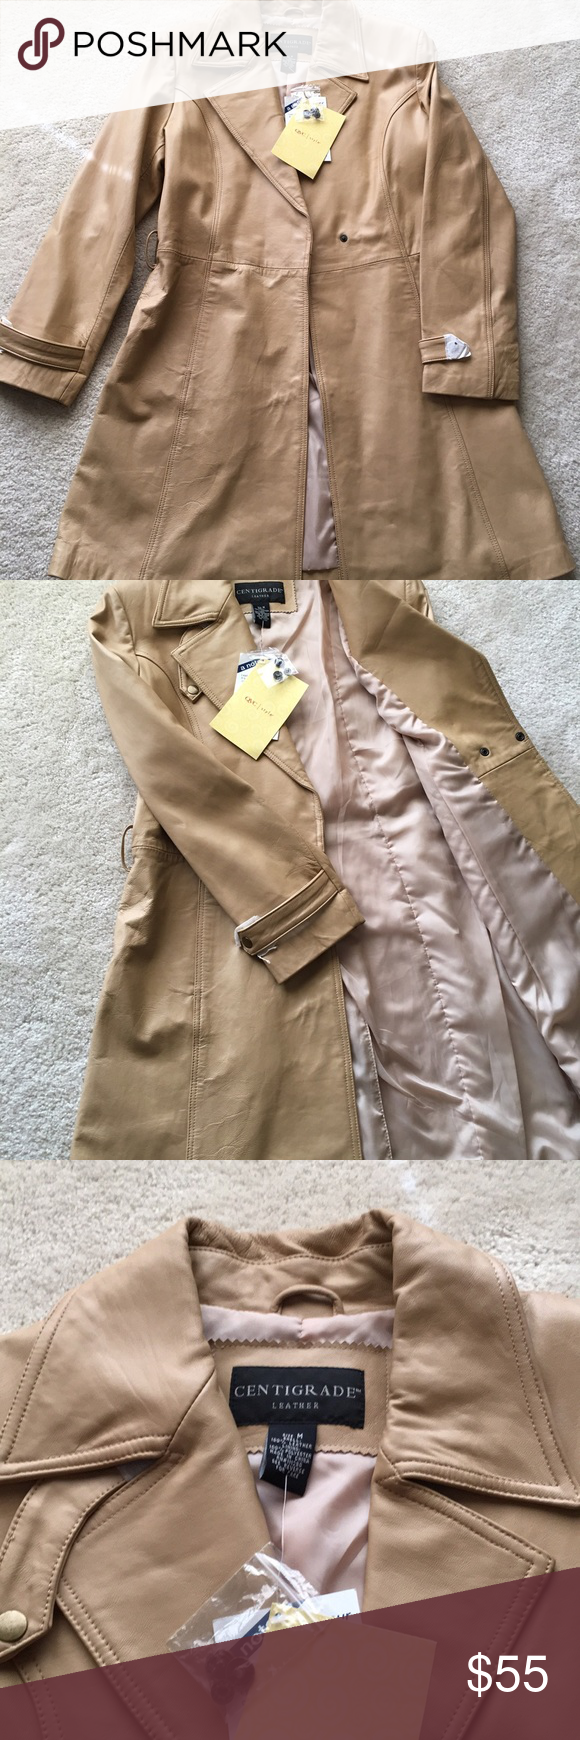 Long Leather Jacket Jacket is new, missing the belt, tags are attached, tan color Jackets & Coats Capes